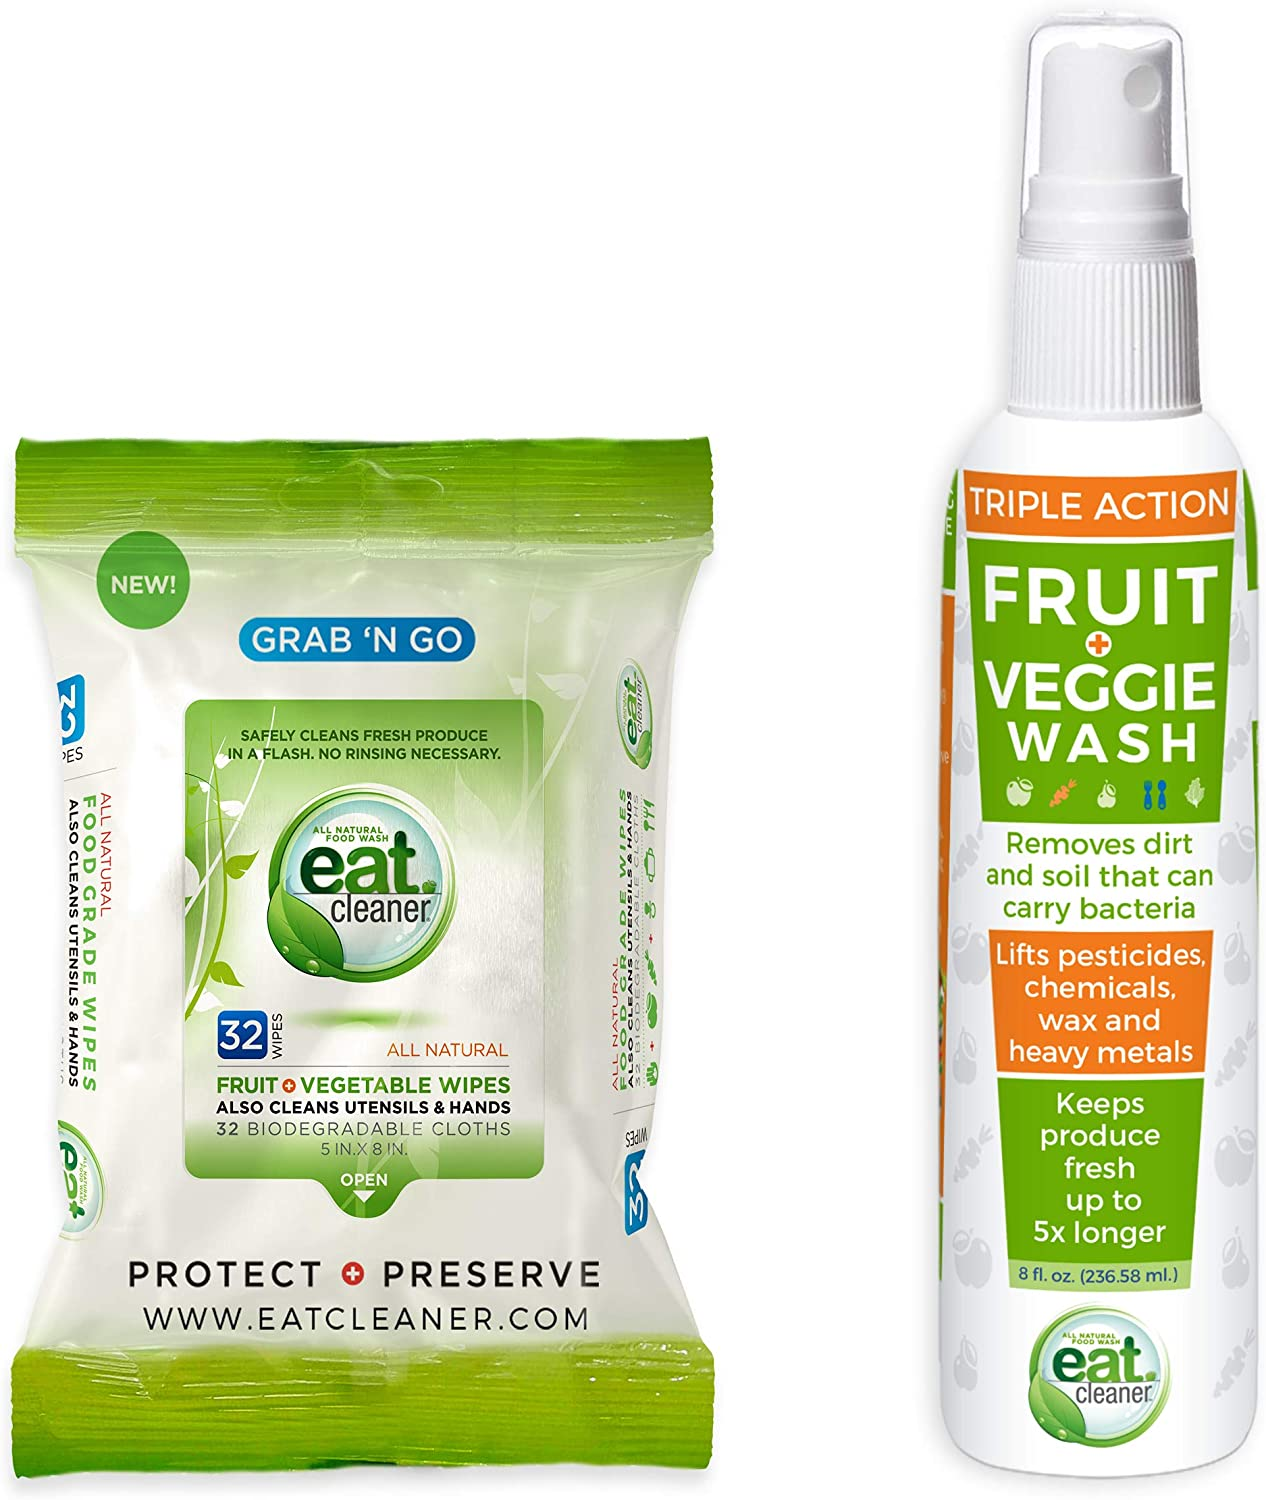 Eat Cleaner Try Us Bundle – Handy Food Grade Wipes (32ct) and Our Signature Fruit and Vegetable Wash Spray (8 oz), Lab Proven to be 99.9% More Effective Than Water